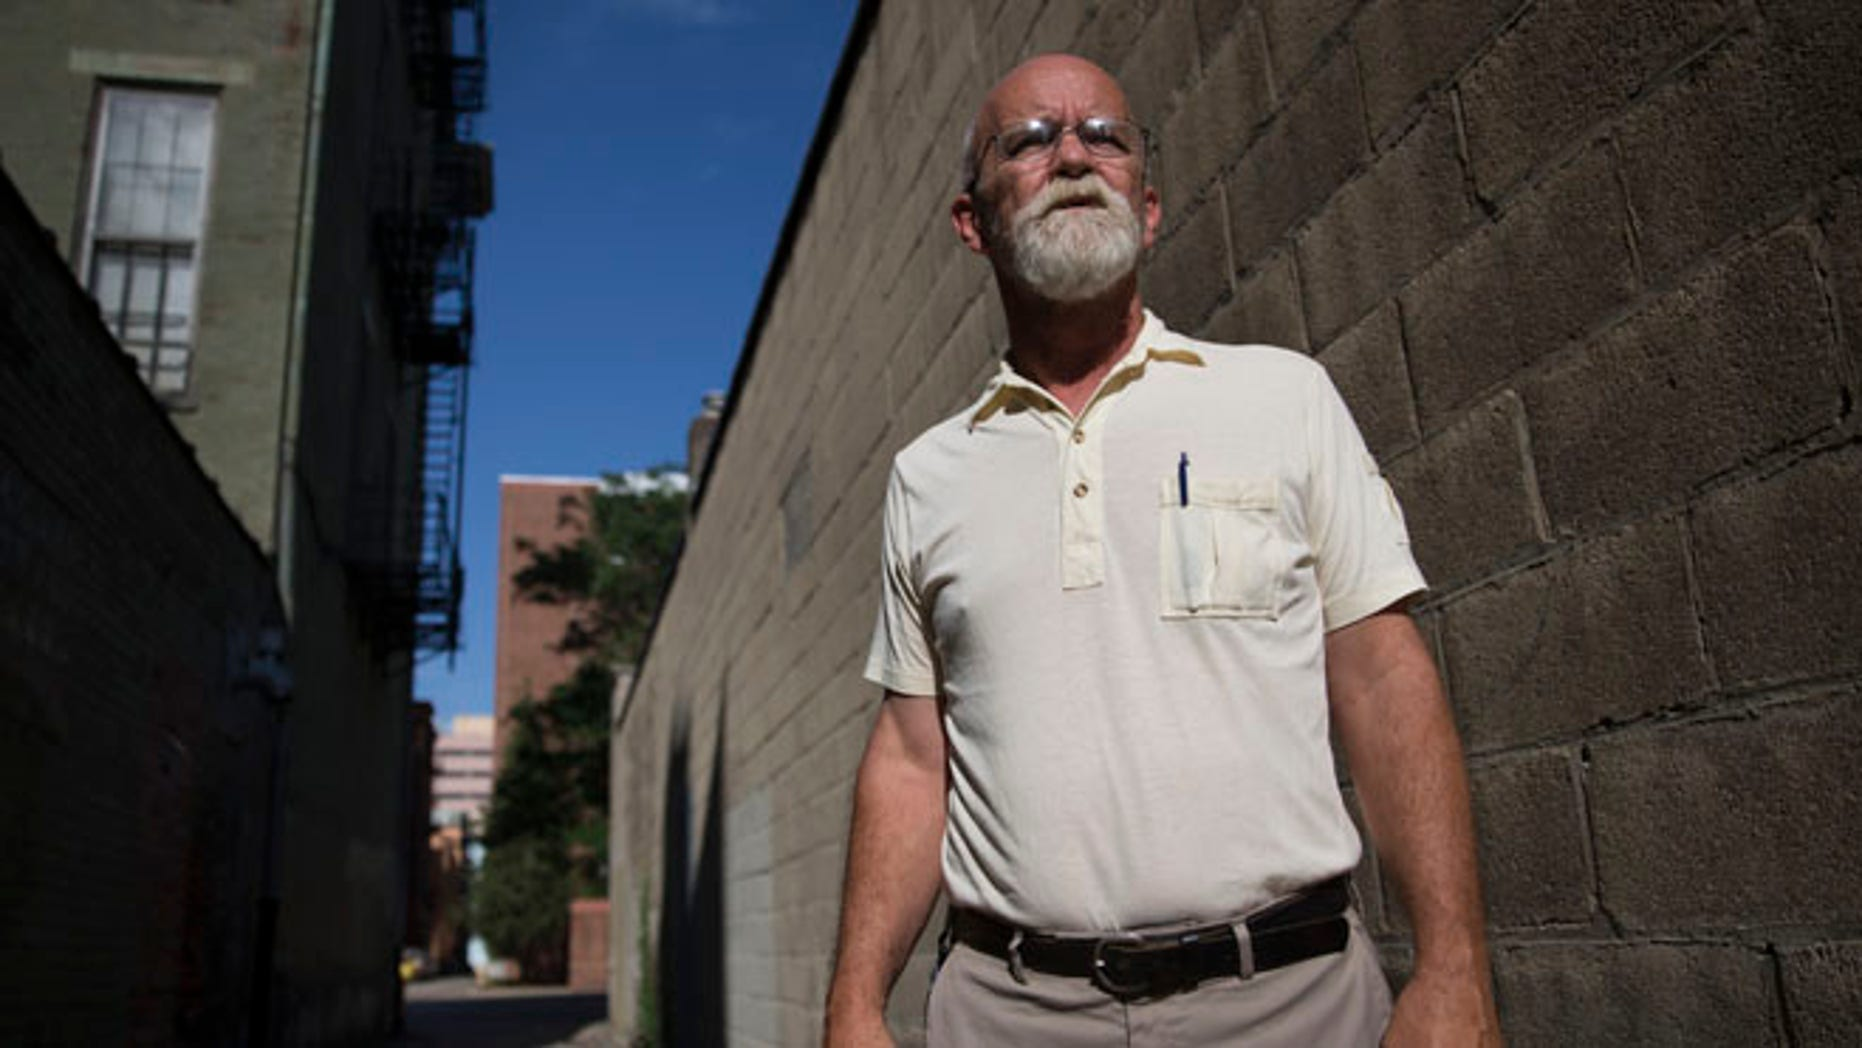 FILE -- June 24, 2015: Veteran Marine David Bowles, 56, a beneficiary of the new Veterans Assistance Homeless Veterans Community Employment Services program, is photographed, in Cincinnati. Bowles and other job-ready veterans who are homeless or on the brink of homelessness can now turn to the program for help finding the types of long-term jobs needed to sustain housing. (AP Photo/John Minchillo)